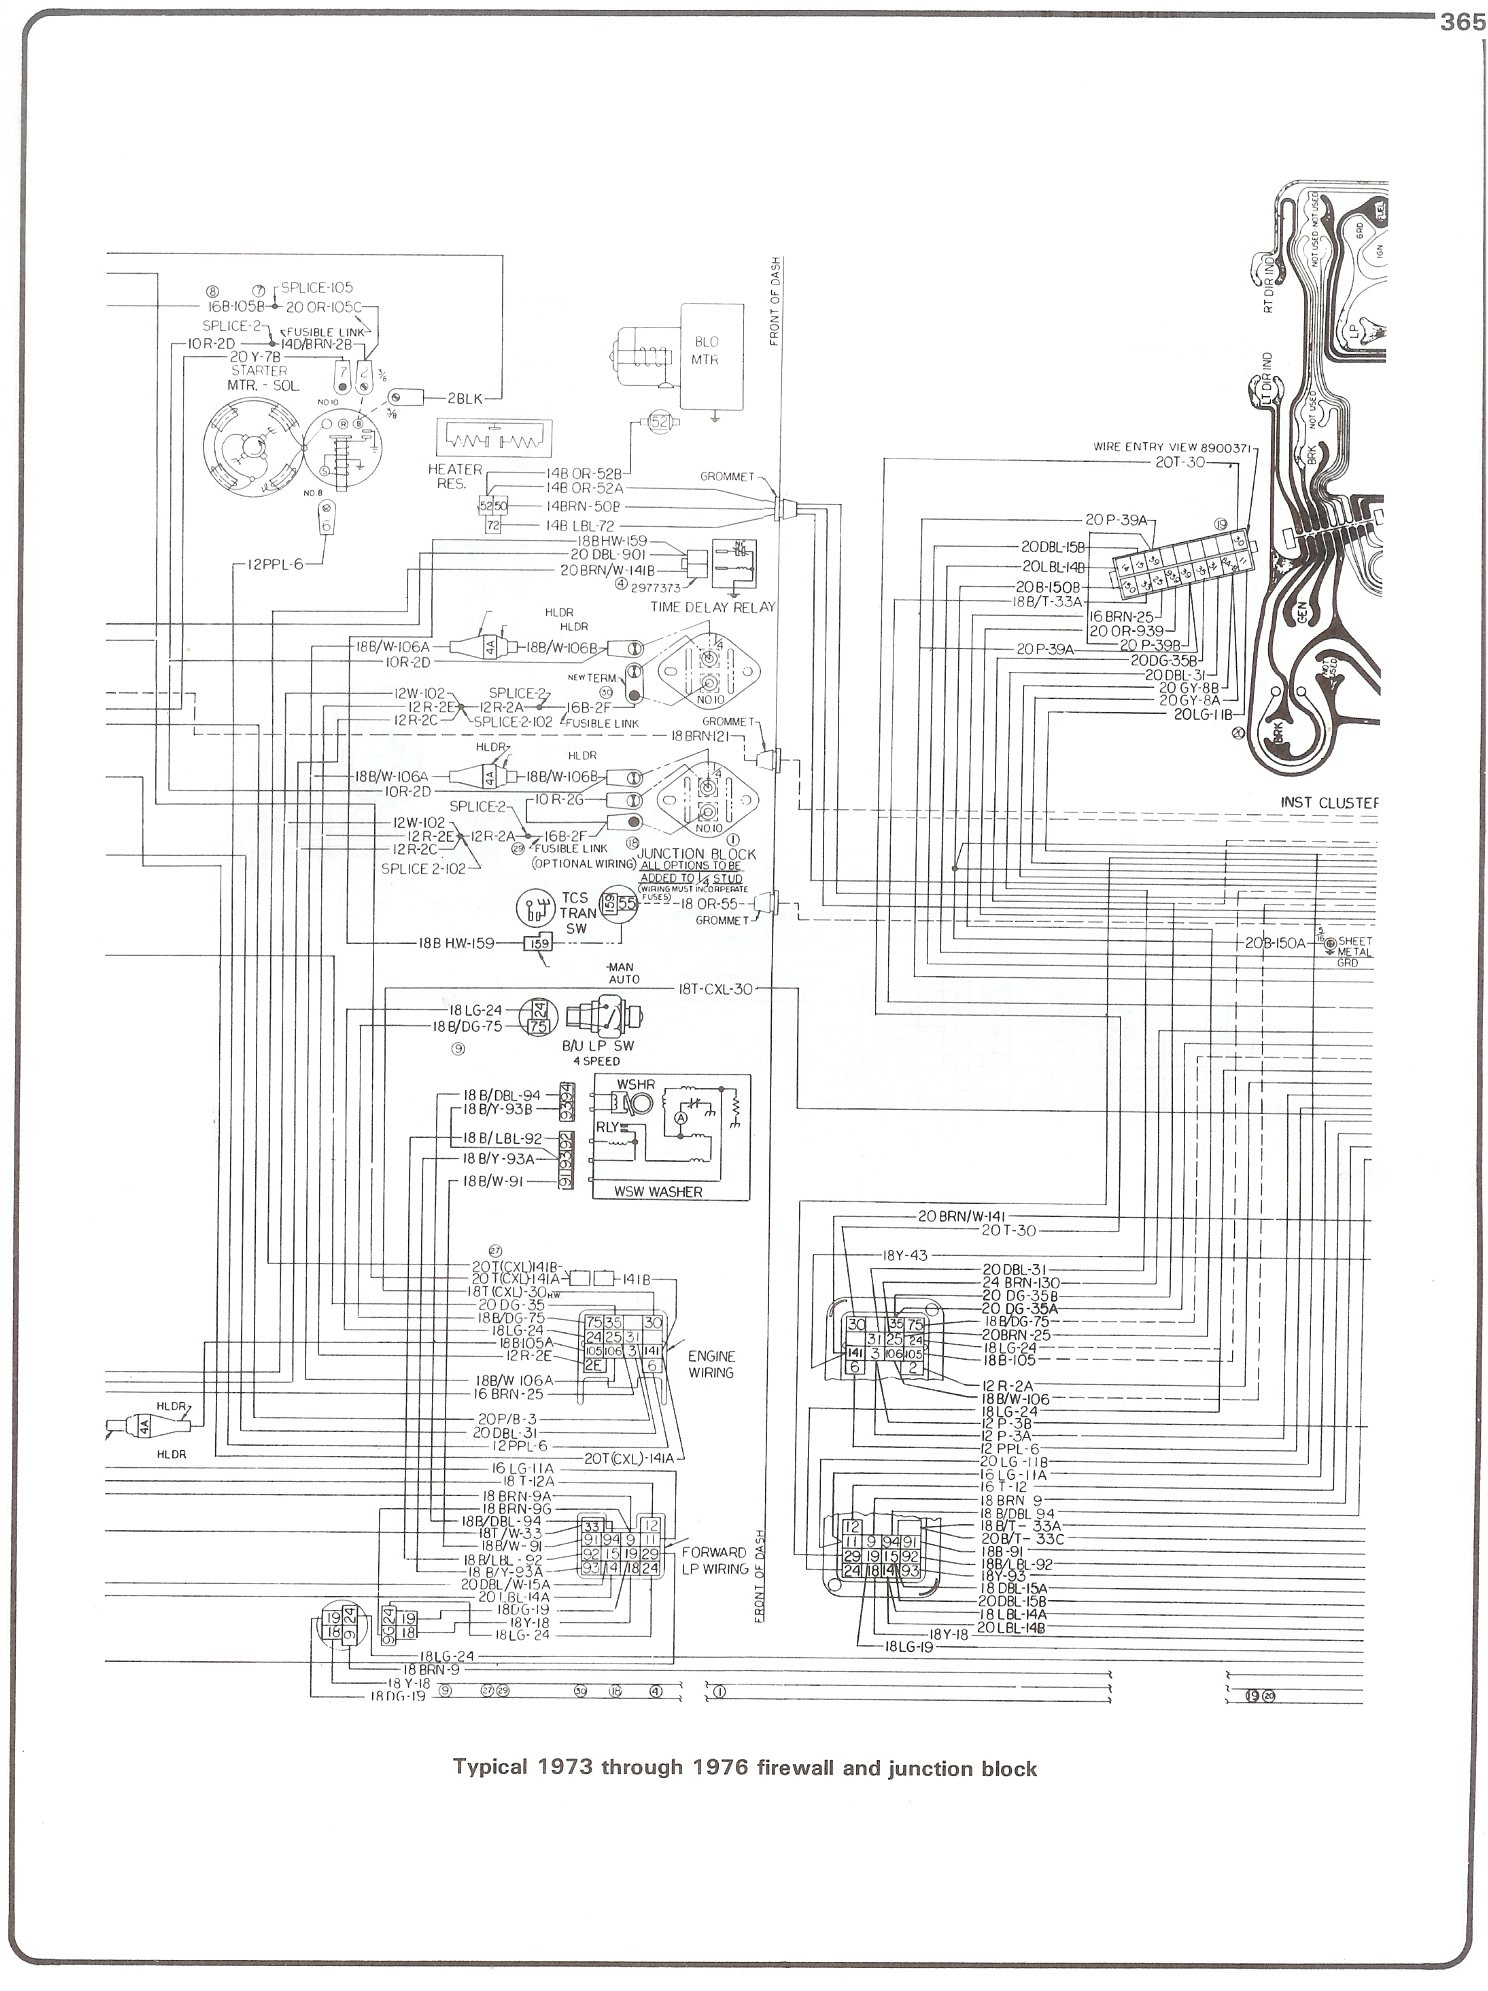 73 76_firewall_junct complete 73 87 wiring diagrams chevy ignition wiring diagram at n-0.co